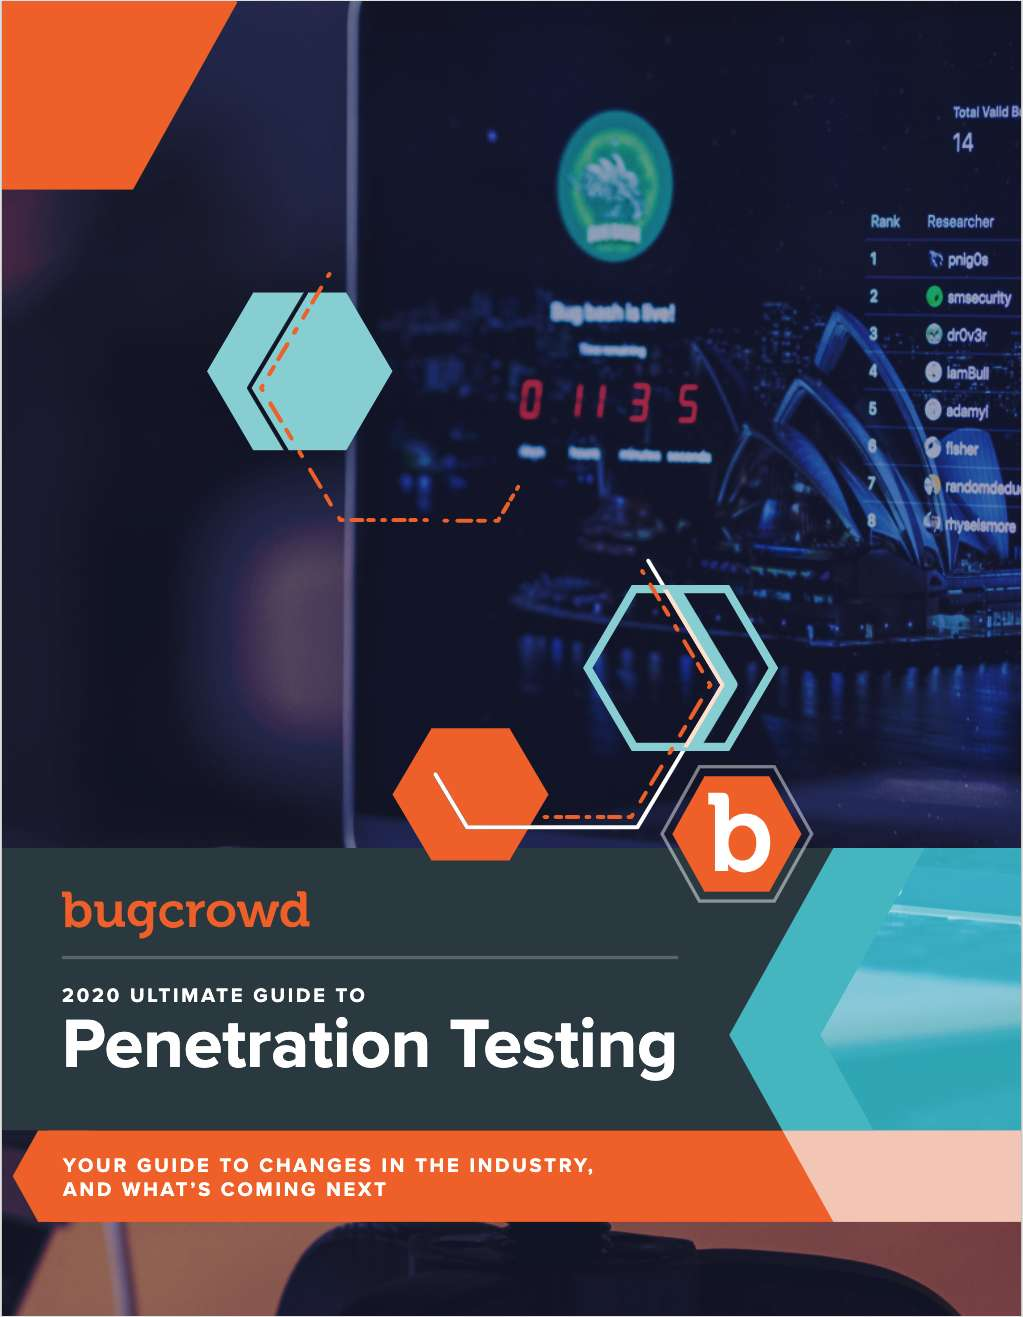 2020 Ultimate Guide to Penetration Testing